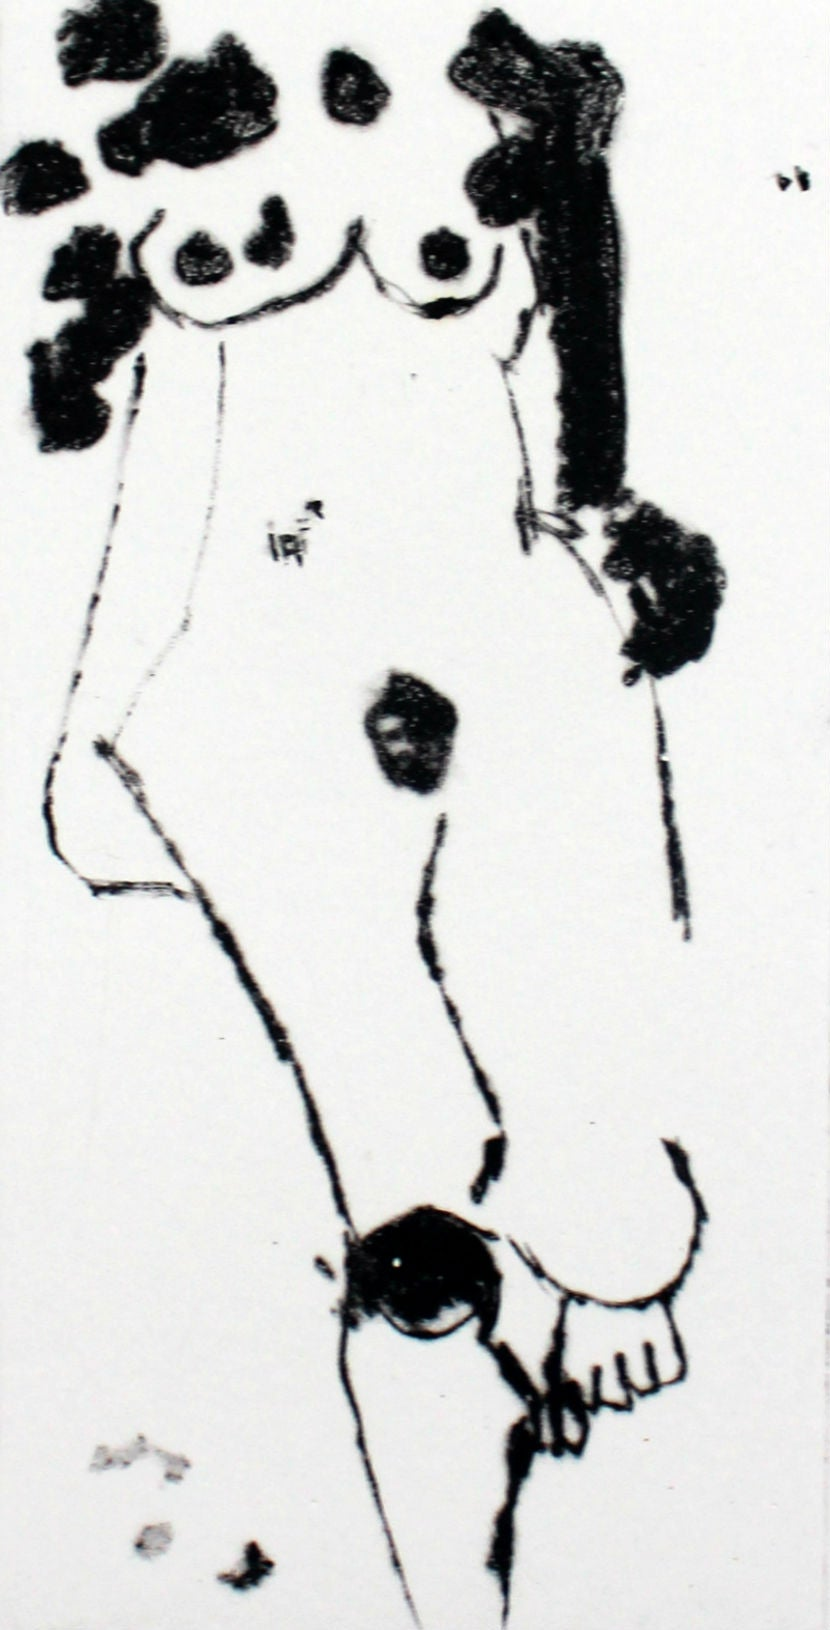 Nude XV - XXI Century, Contemporary Figurative Drypoint Etching Print